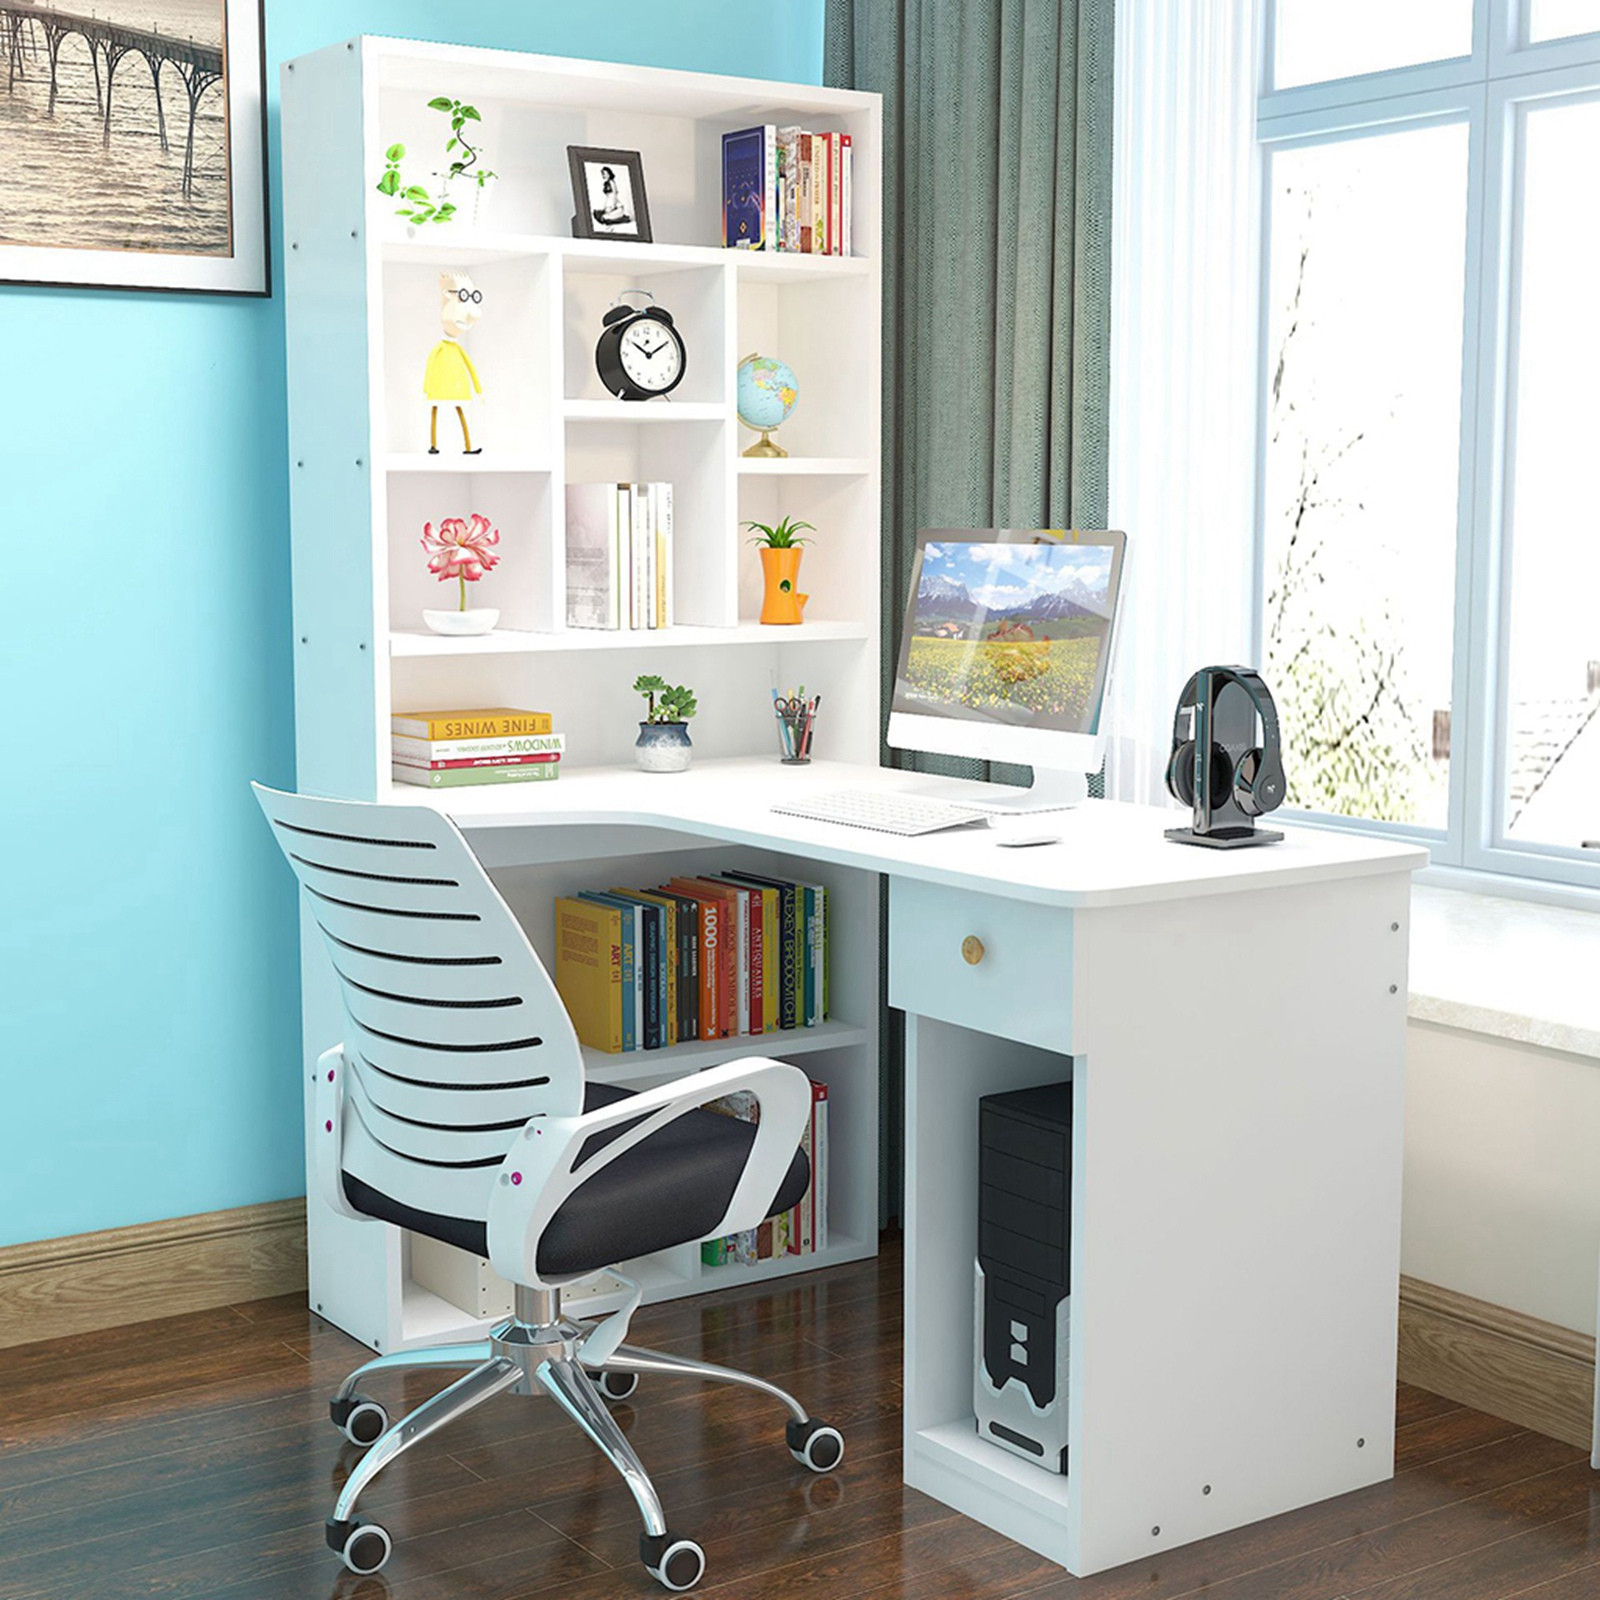 Computer Desk Desktop Desk Bookcase Table Combination Simpleness Furniture Student Writing Desk Подставка Под Ноутбук 1